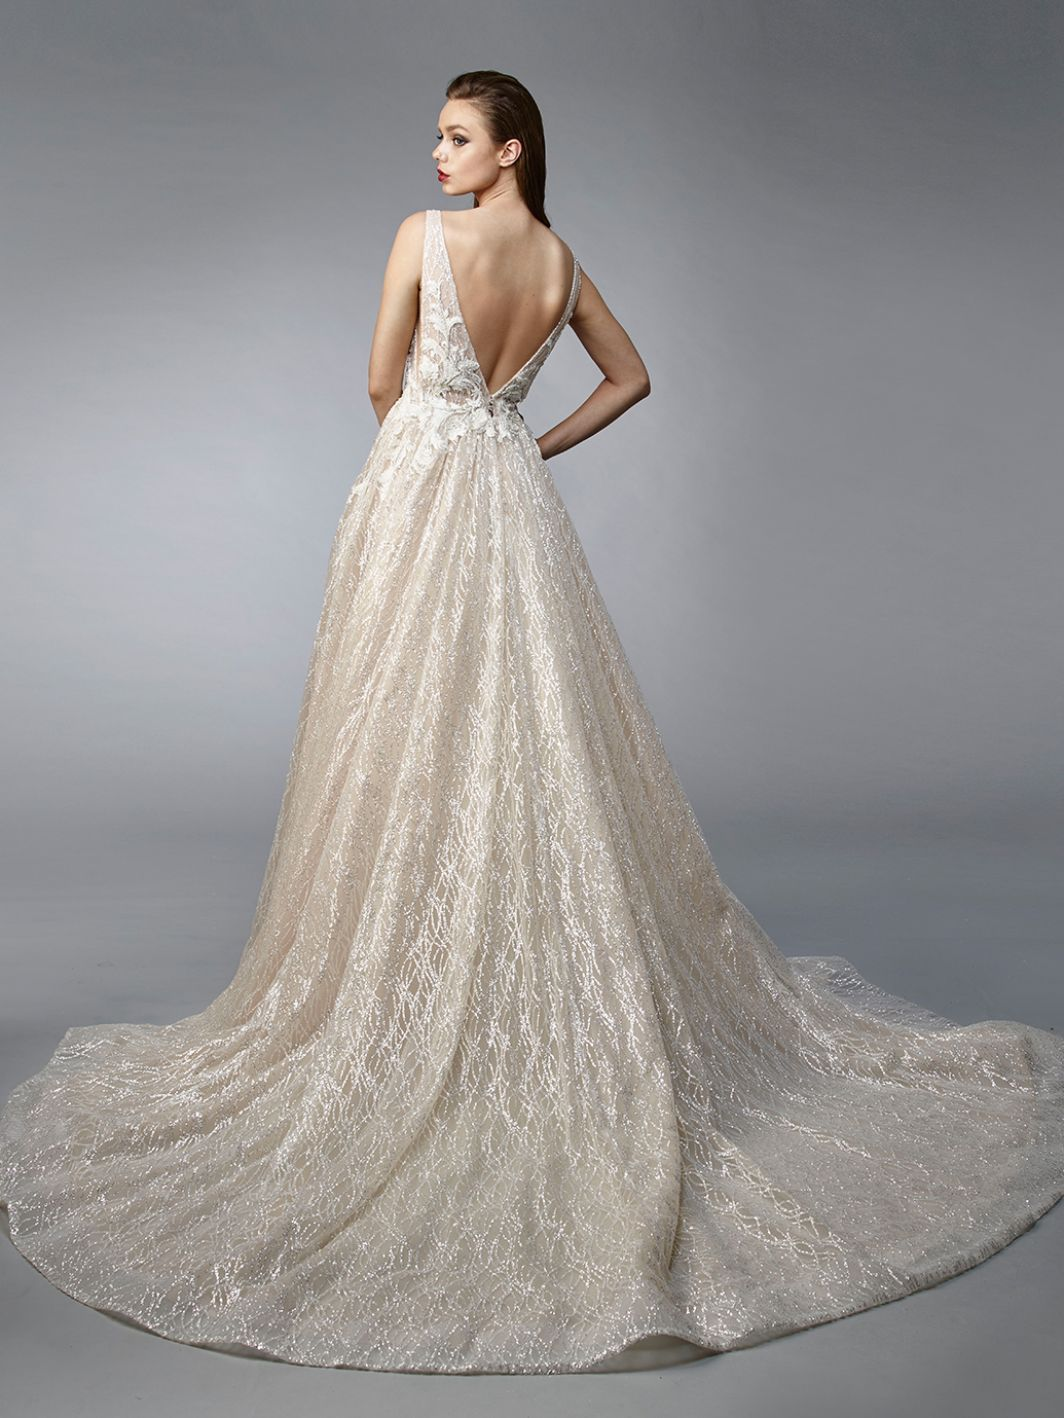 a1c385d738 Nellie by ENZOANI- Back-available at Uptown Bridal in 2019